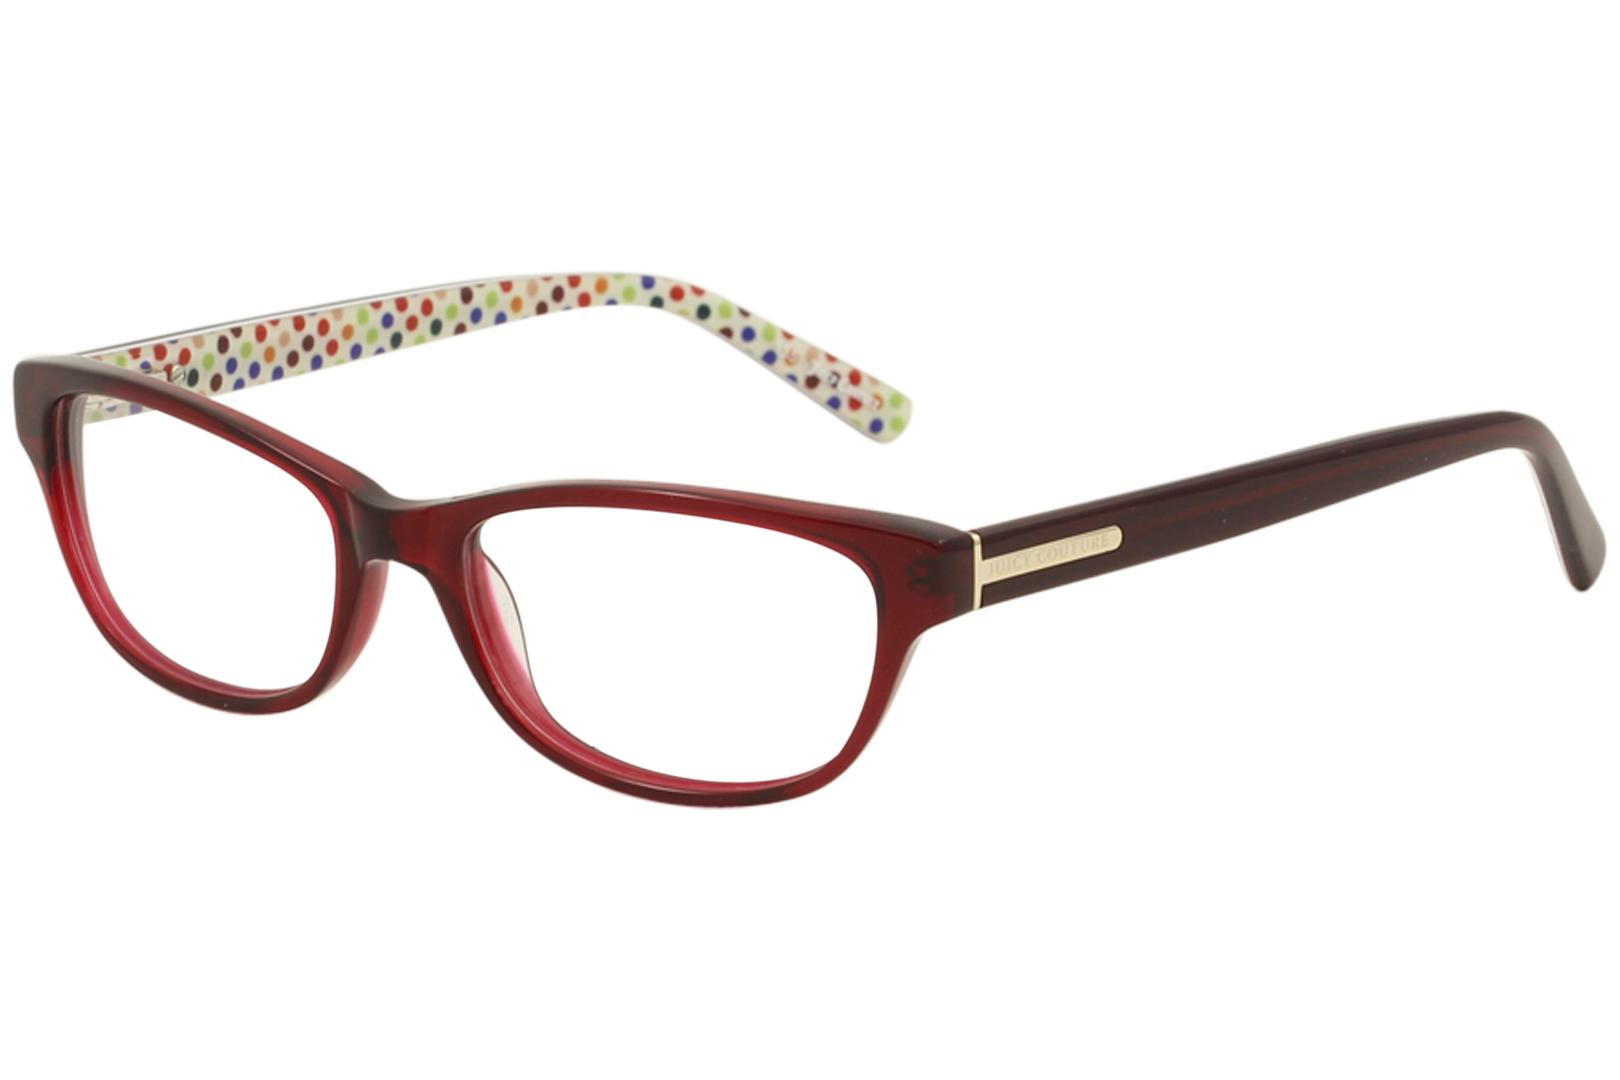 Image of Juicy Couture Women's Eyeglasses JU118 JU/118 Full Rim Optical Frame - Burgundy Crystal   0ETH - Lens 51 Bridge 16 Temple 135mm